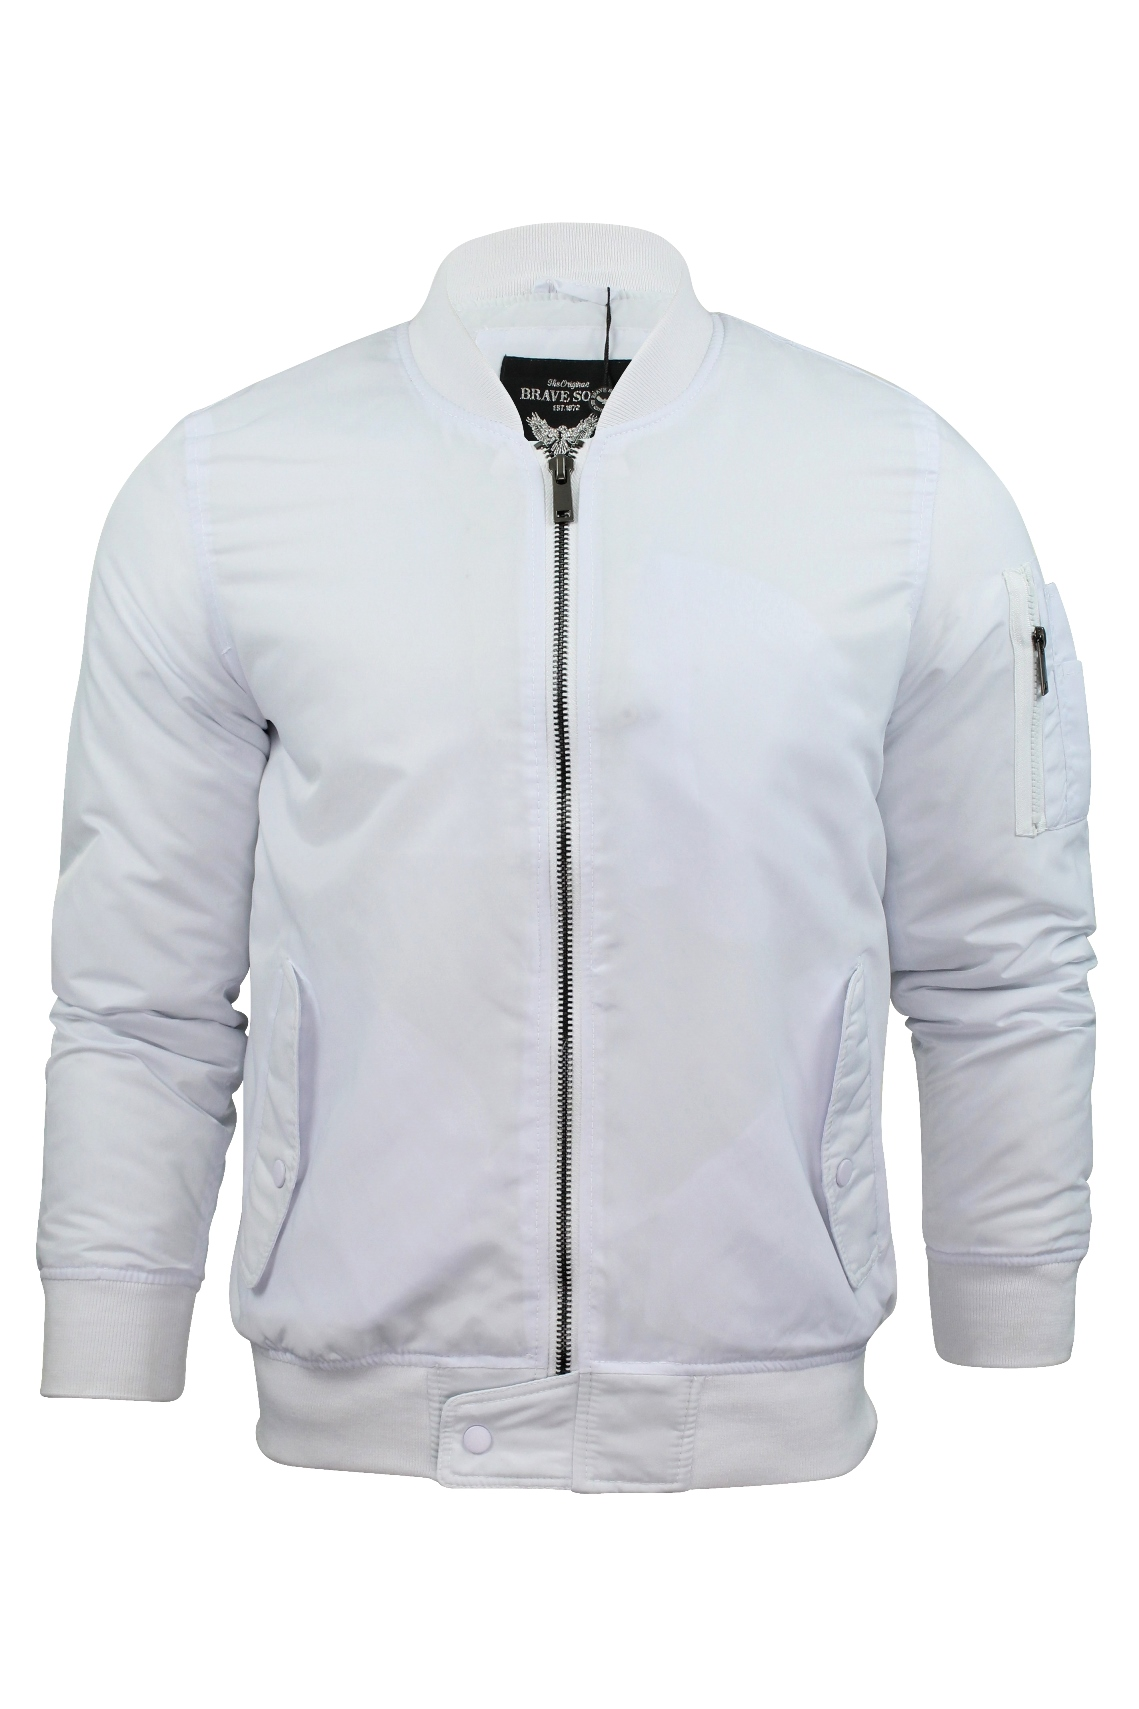 White Mens Bomber Jacket Coat Nj